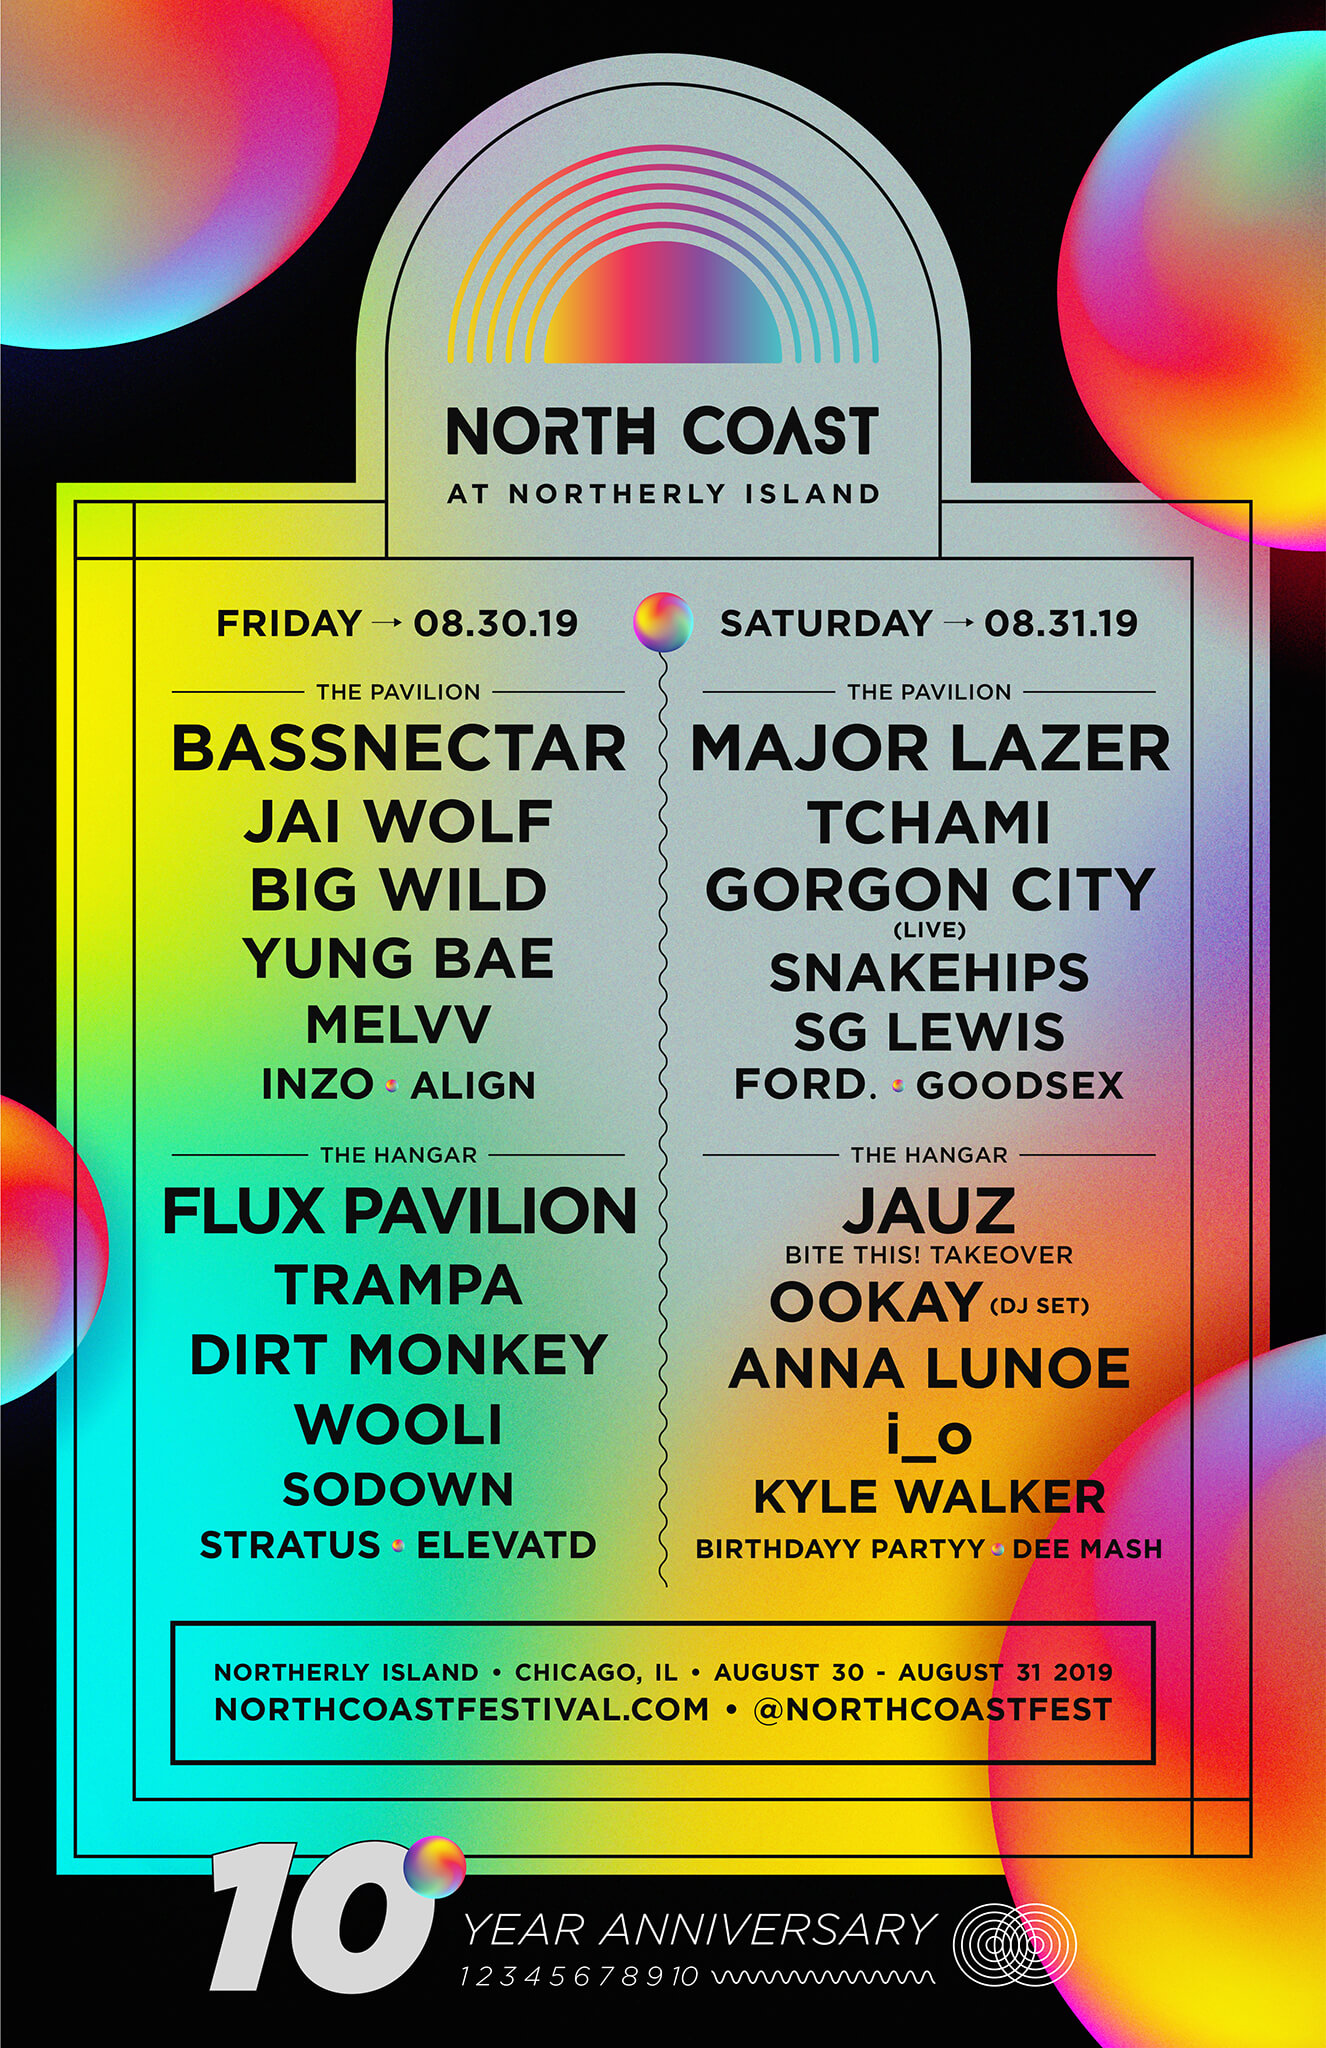 North Coast gets a new home for its 10th anniversary